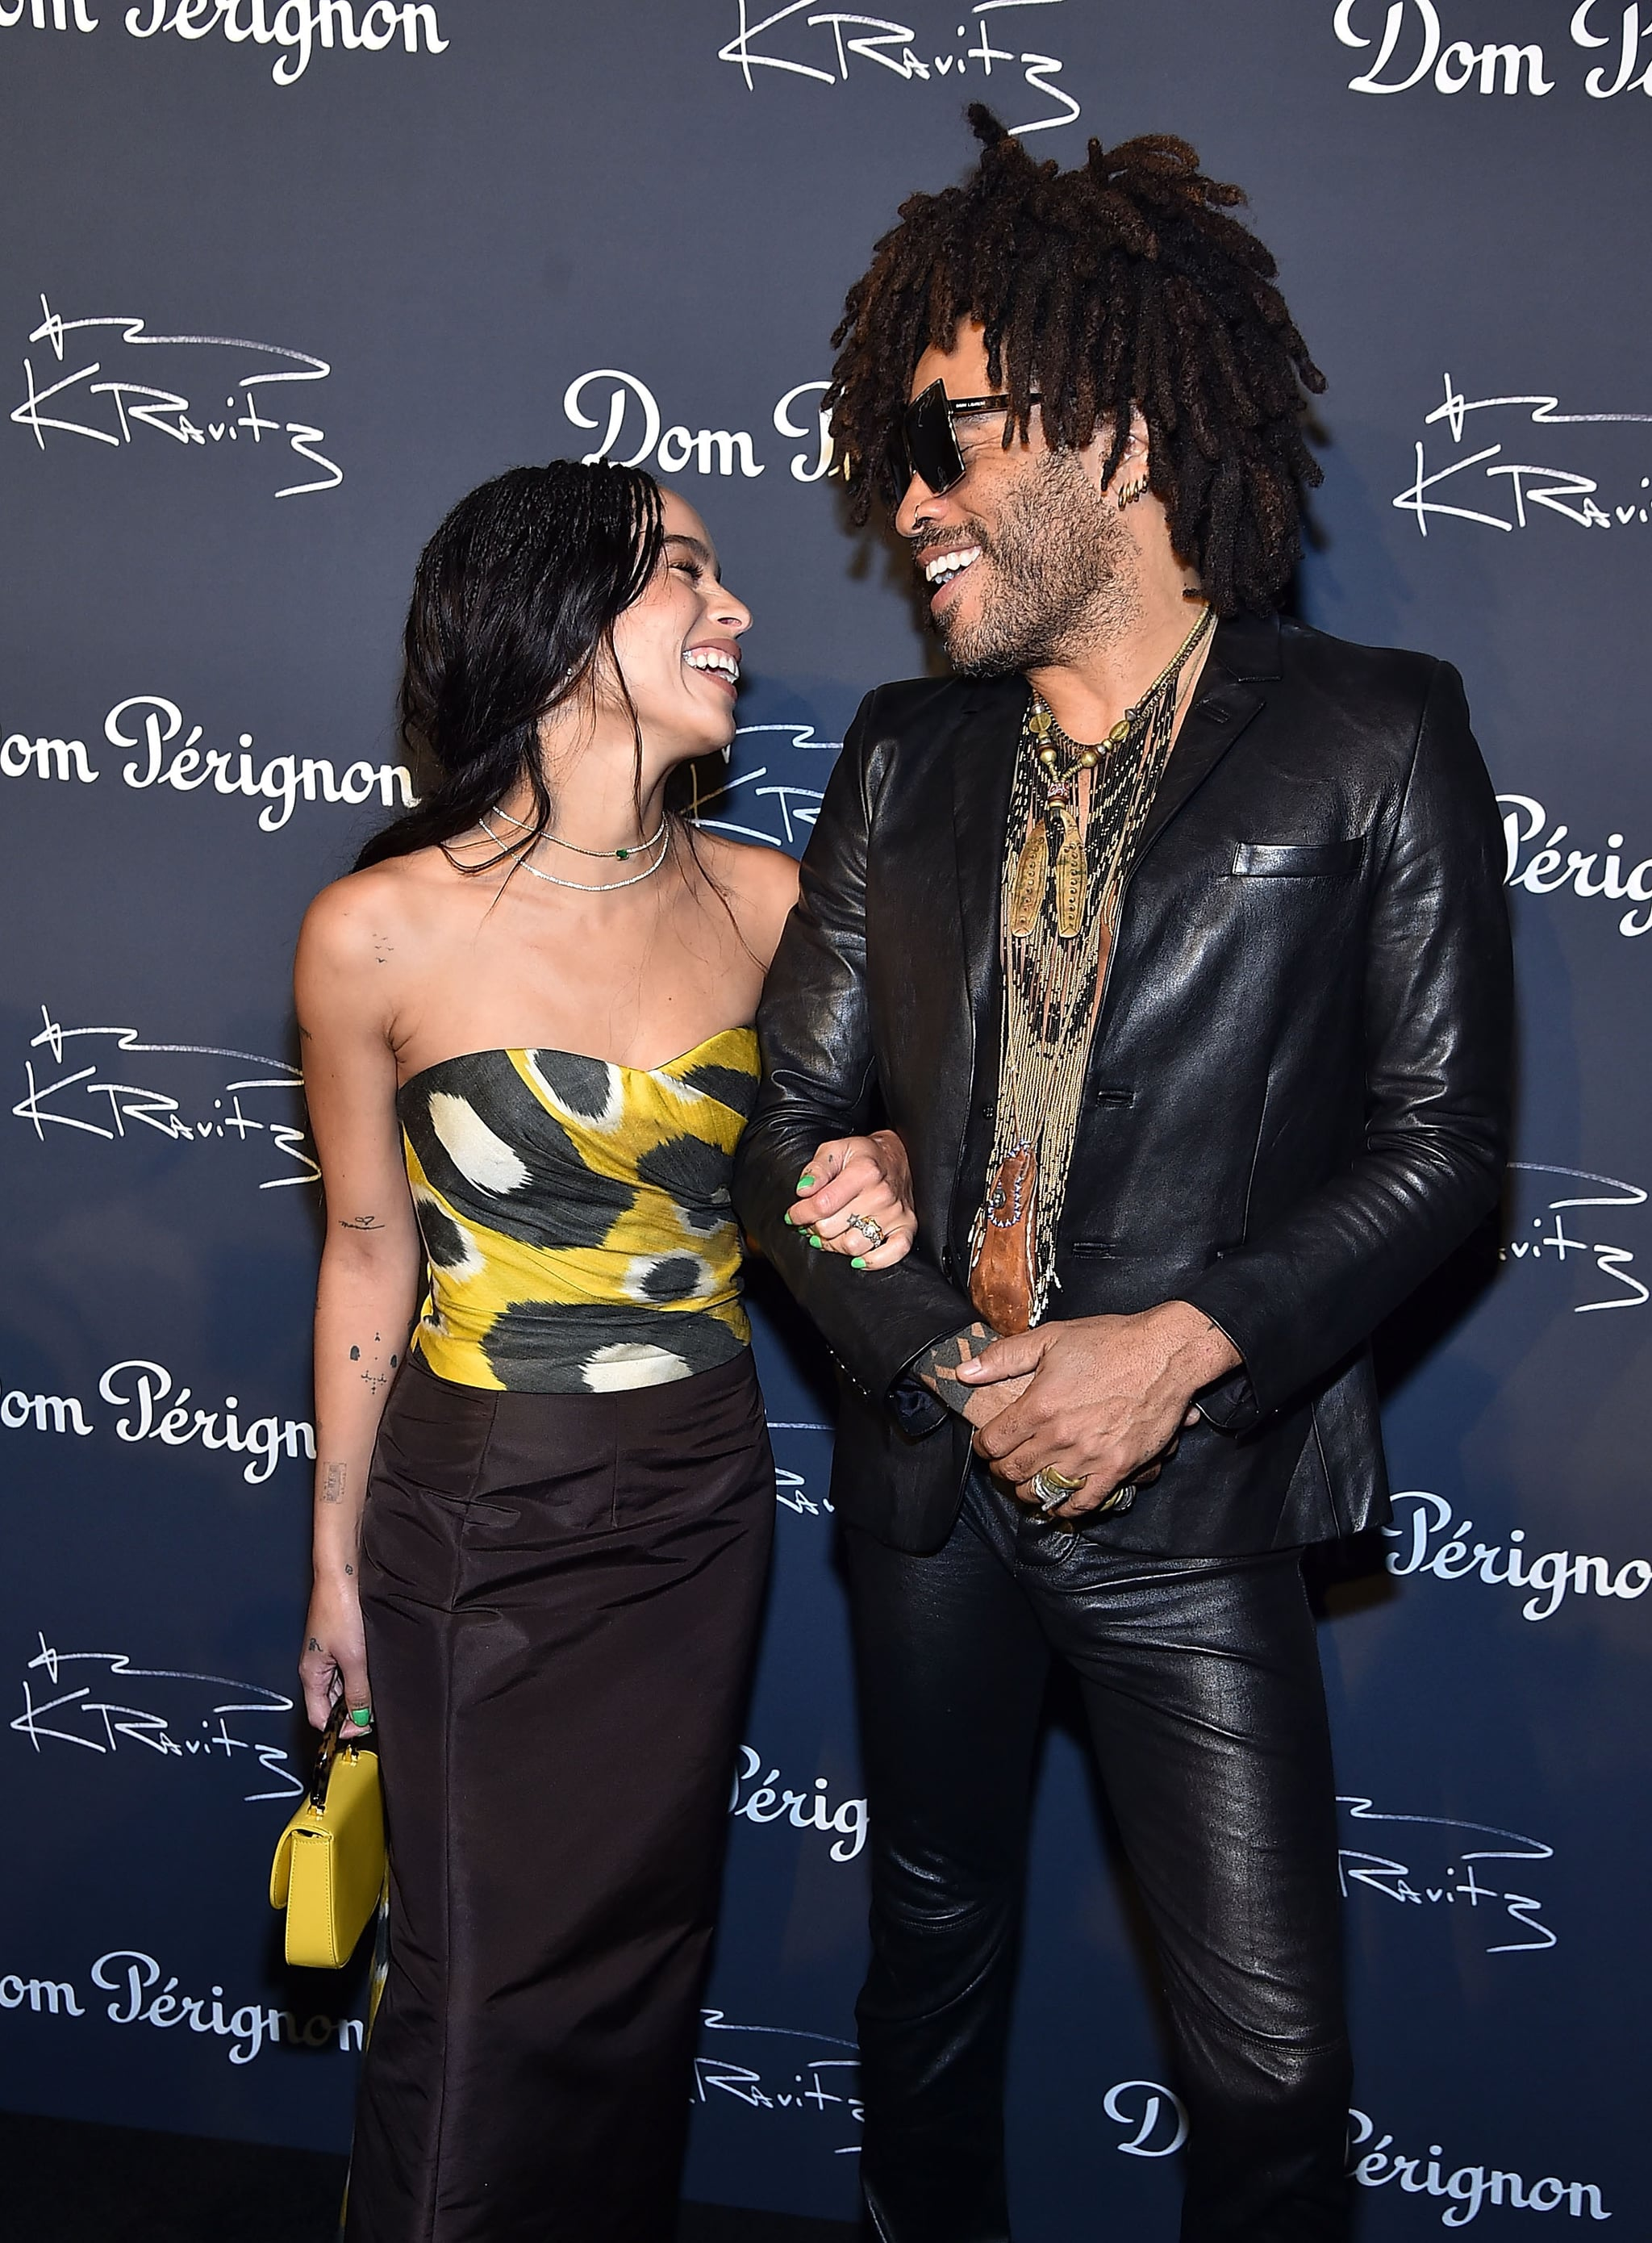 NEW YORK, NY - SEPTEMBER 28:  Zoe Kravitz and Lenny Kravitz attend the Dom Perignon & Lenny Kravitz: 'Assemblage' Exhibition at Skylight Modern on September 28, 2018 in New York City.  (Photo by Theo Wargo/Getty Images)